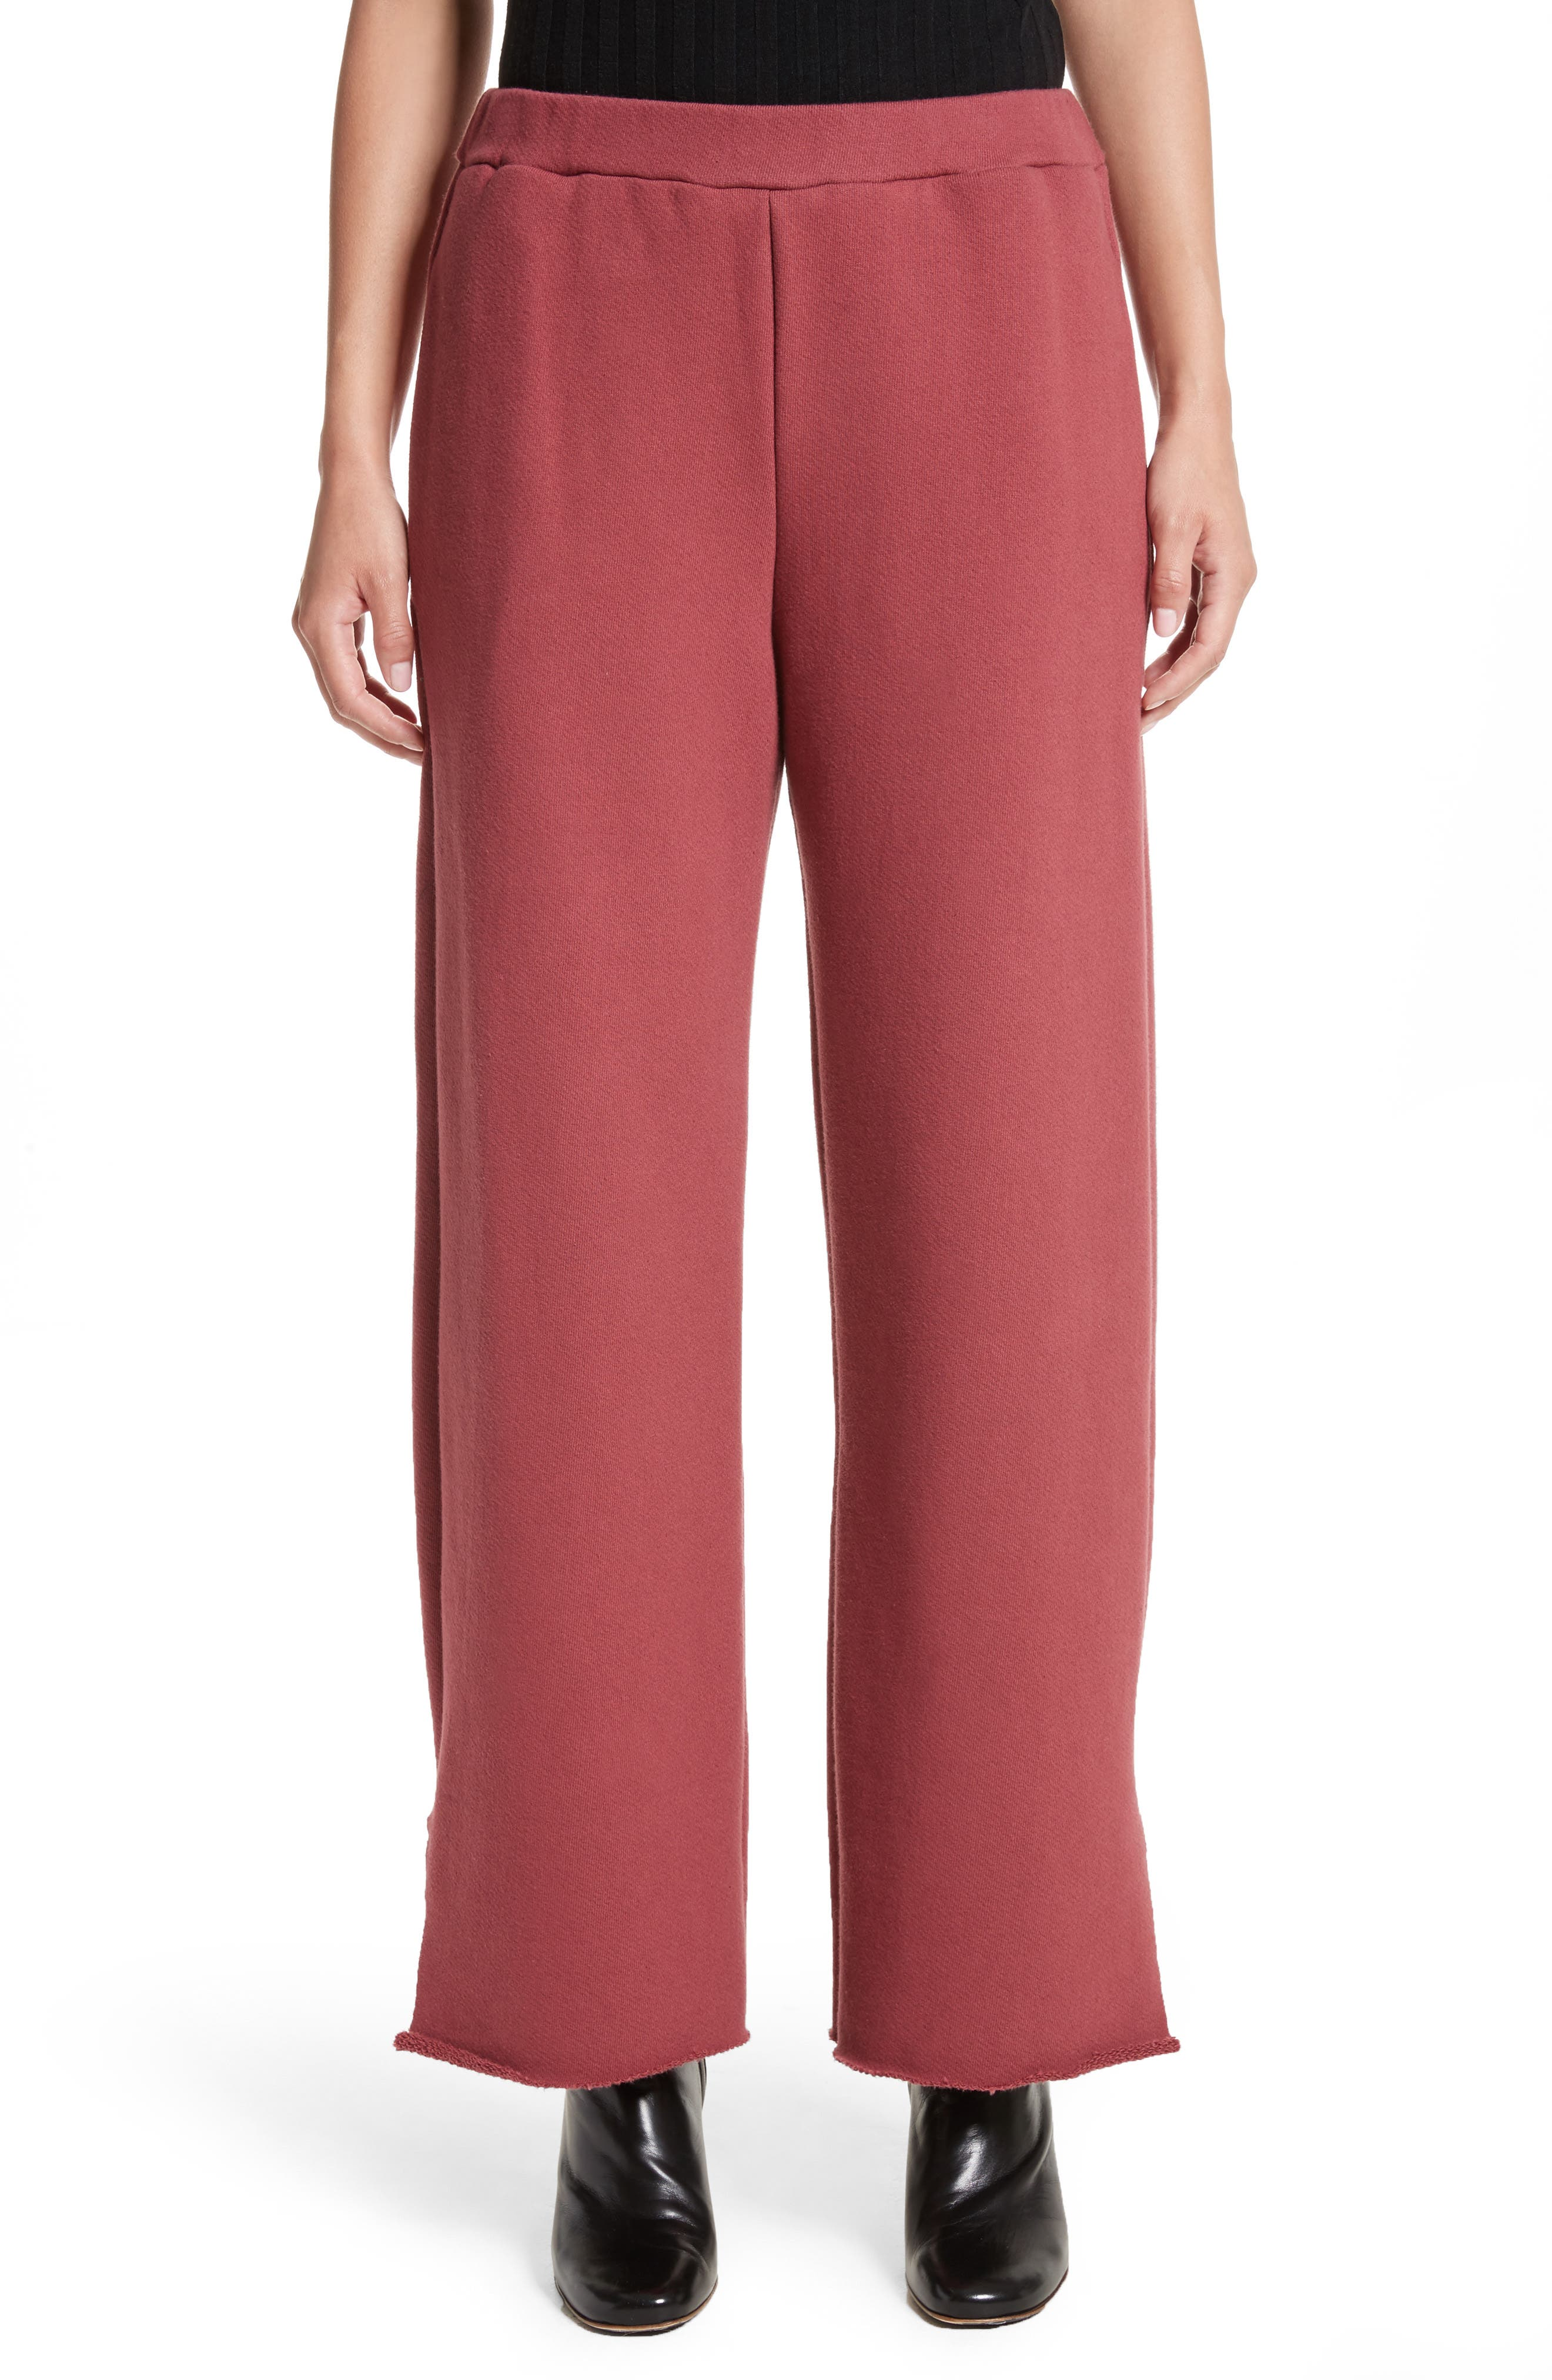 Canal French Terry Sweatpants,                             Main thumbnail 1, color,